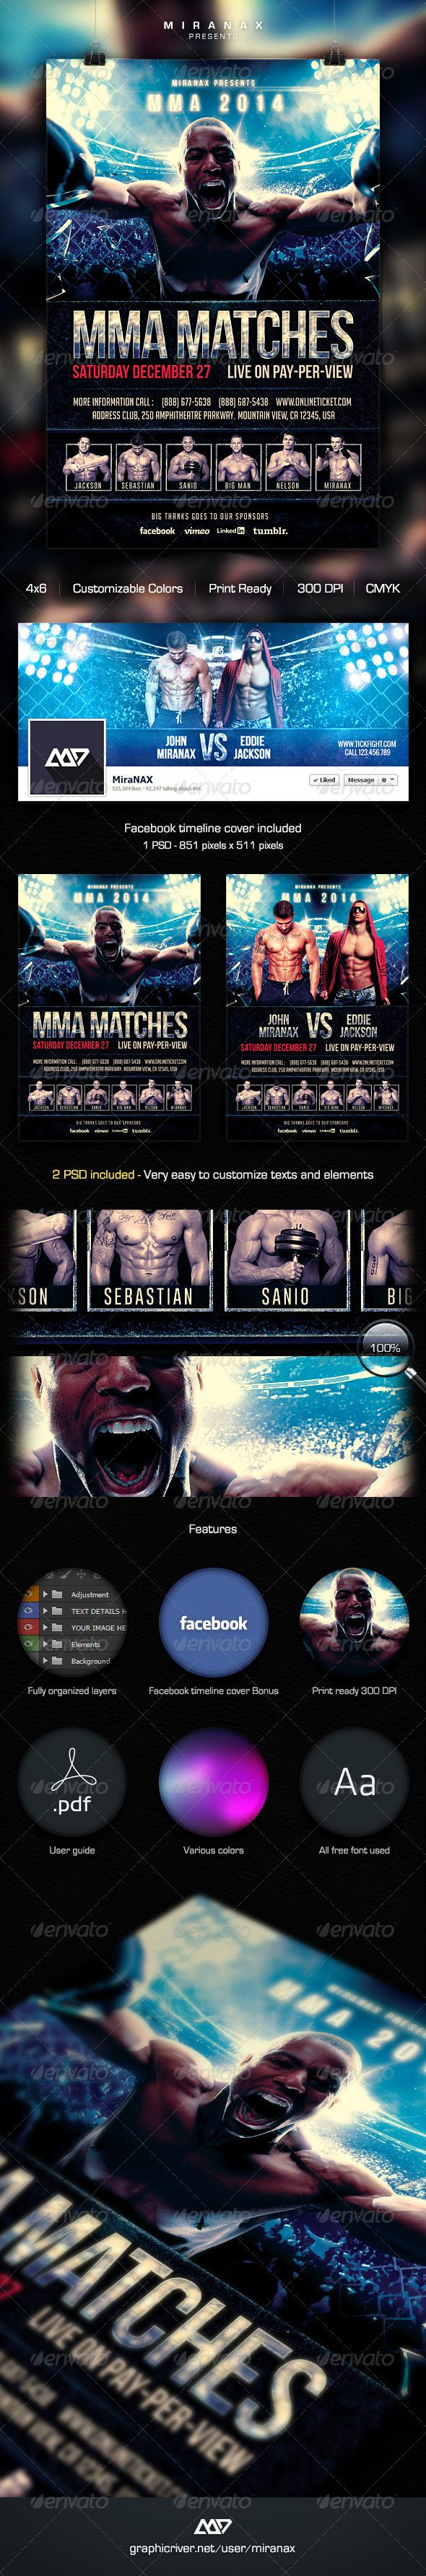 MMA / UFC / Boxing Fight Flyer Template  #wwe #raw #blood match • Click here to download ! http://graphicriver.net/item/mma-ufc-boxing-fight-flyer-template/6002393?ref=pxcr